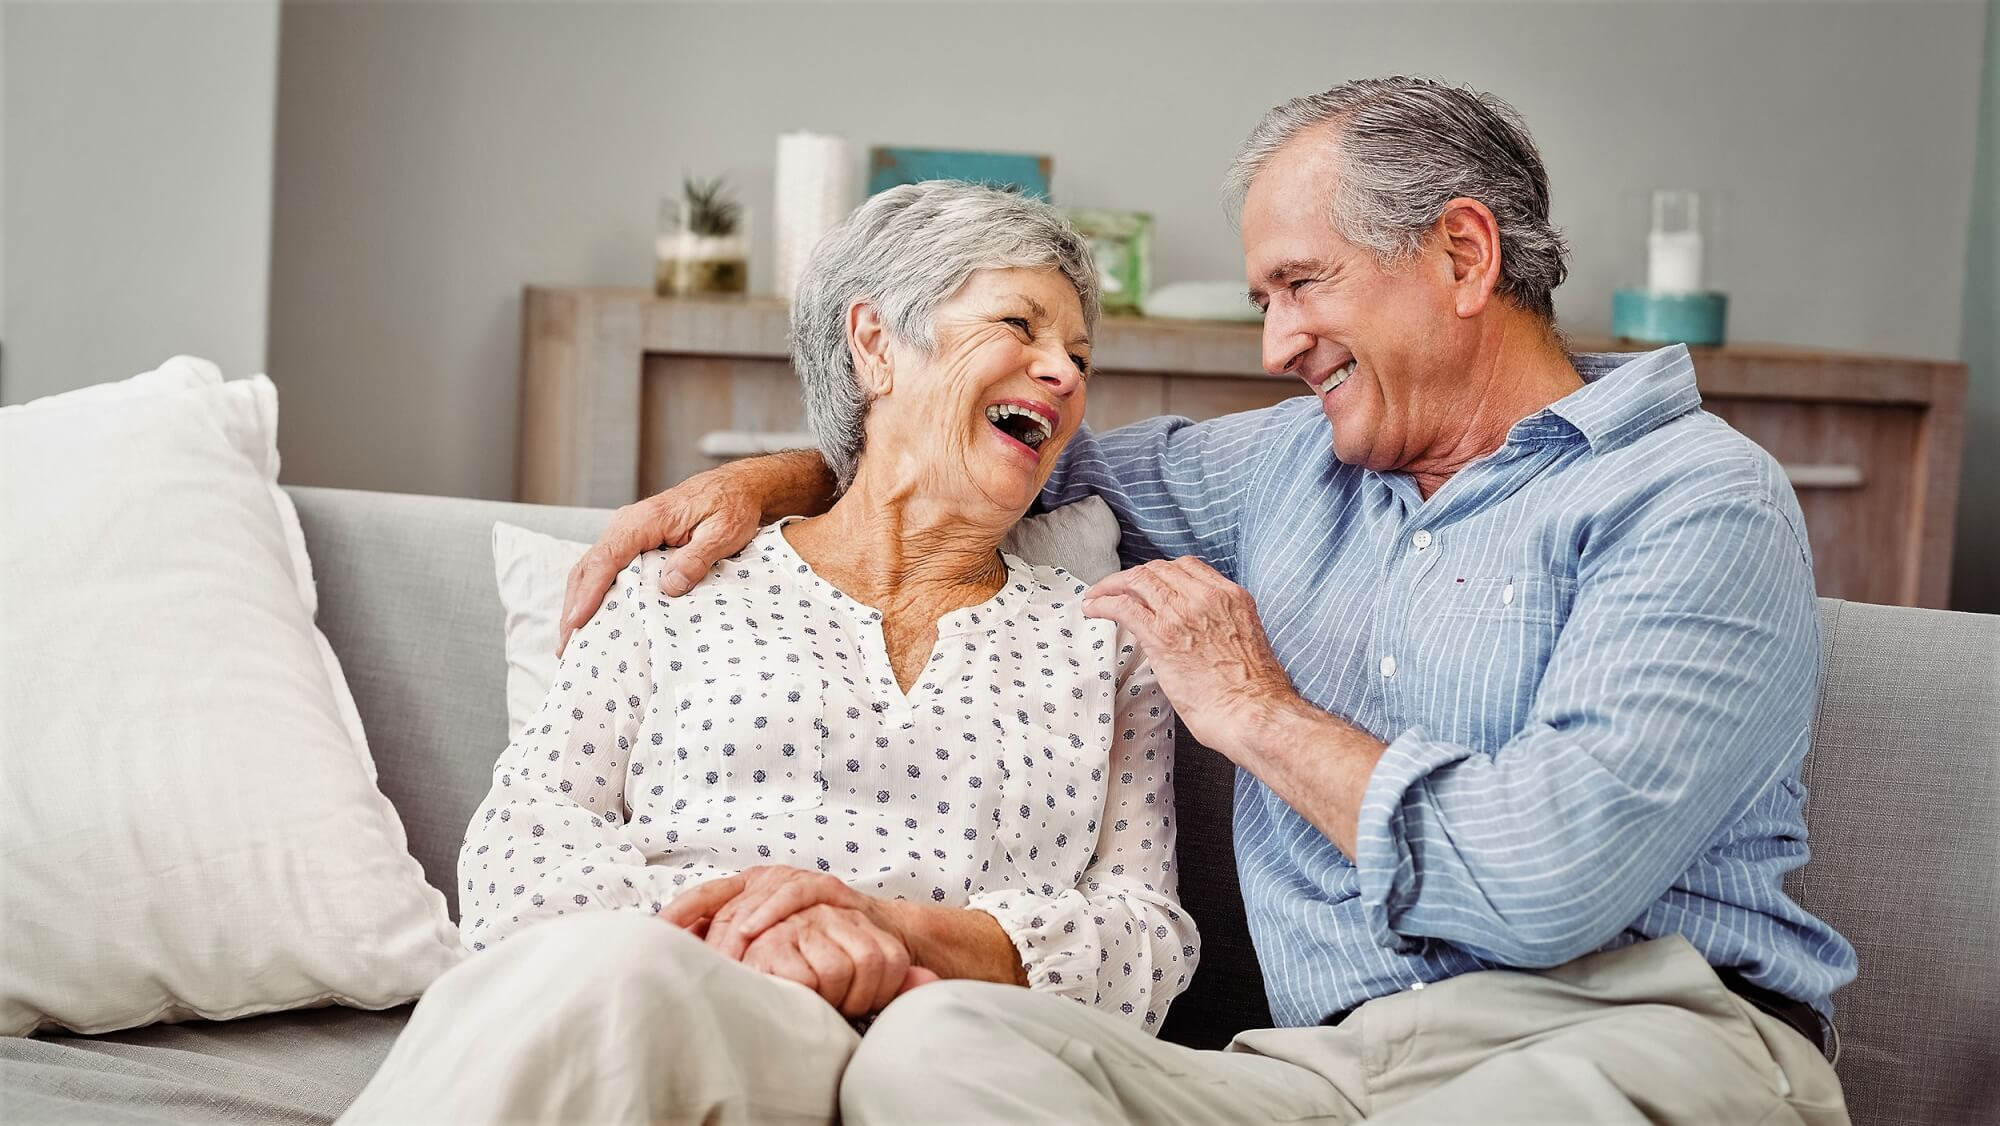 Husband and wife have a laugh together on their couch.